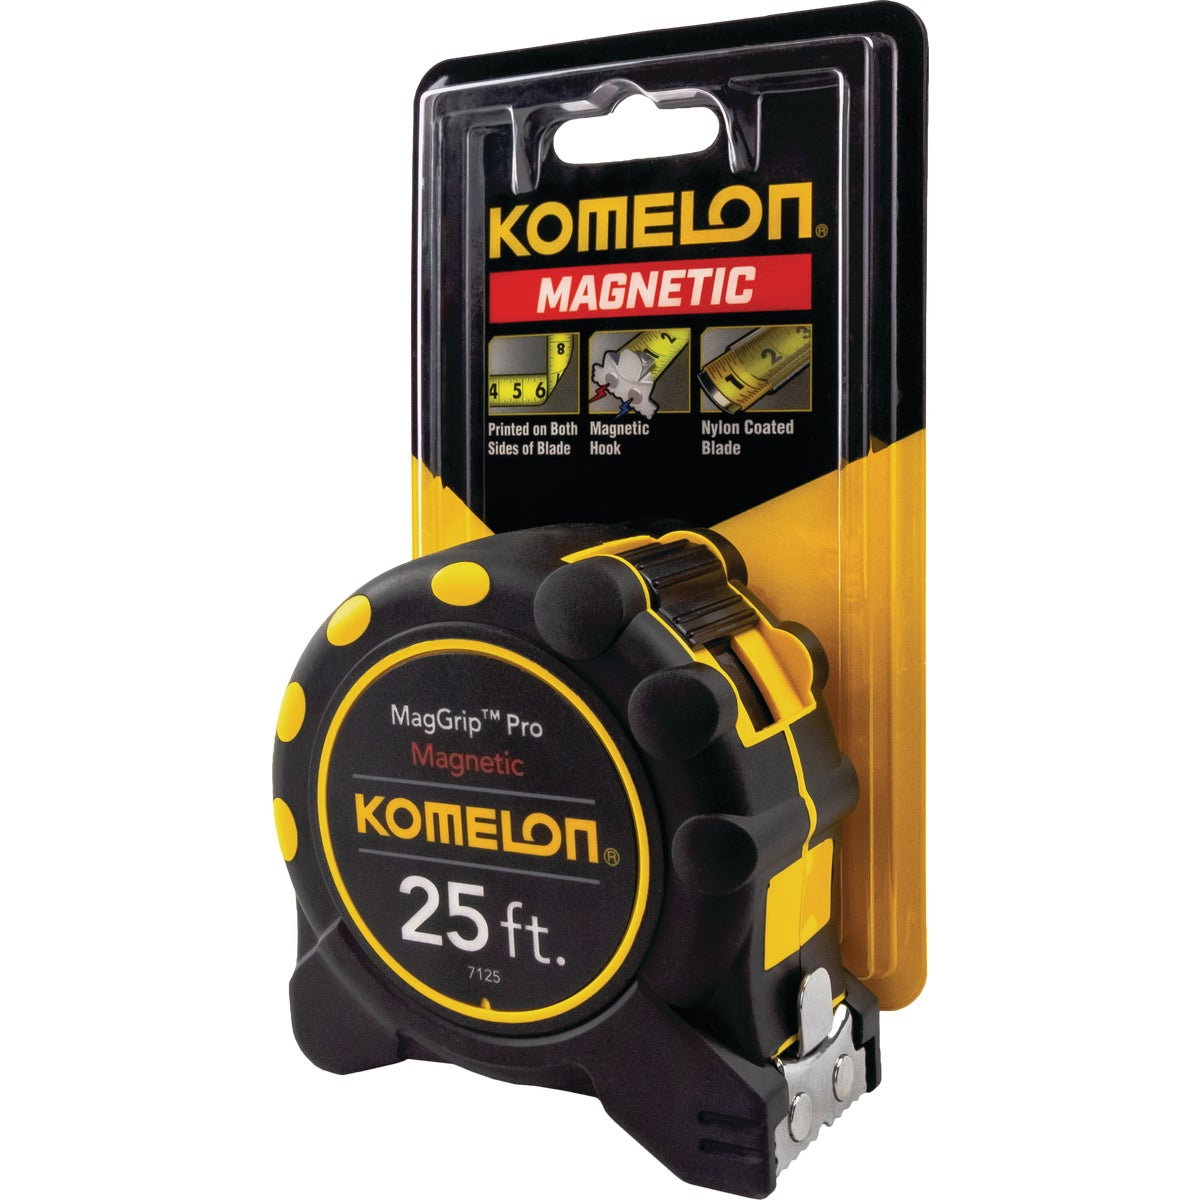 "1""X25' PLASTIC TAPE RULE - 7425 by Komelon Usa Corp"